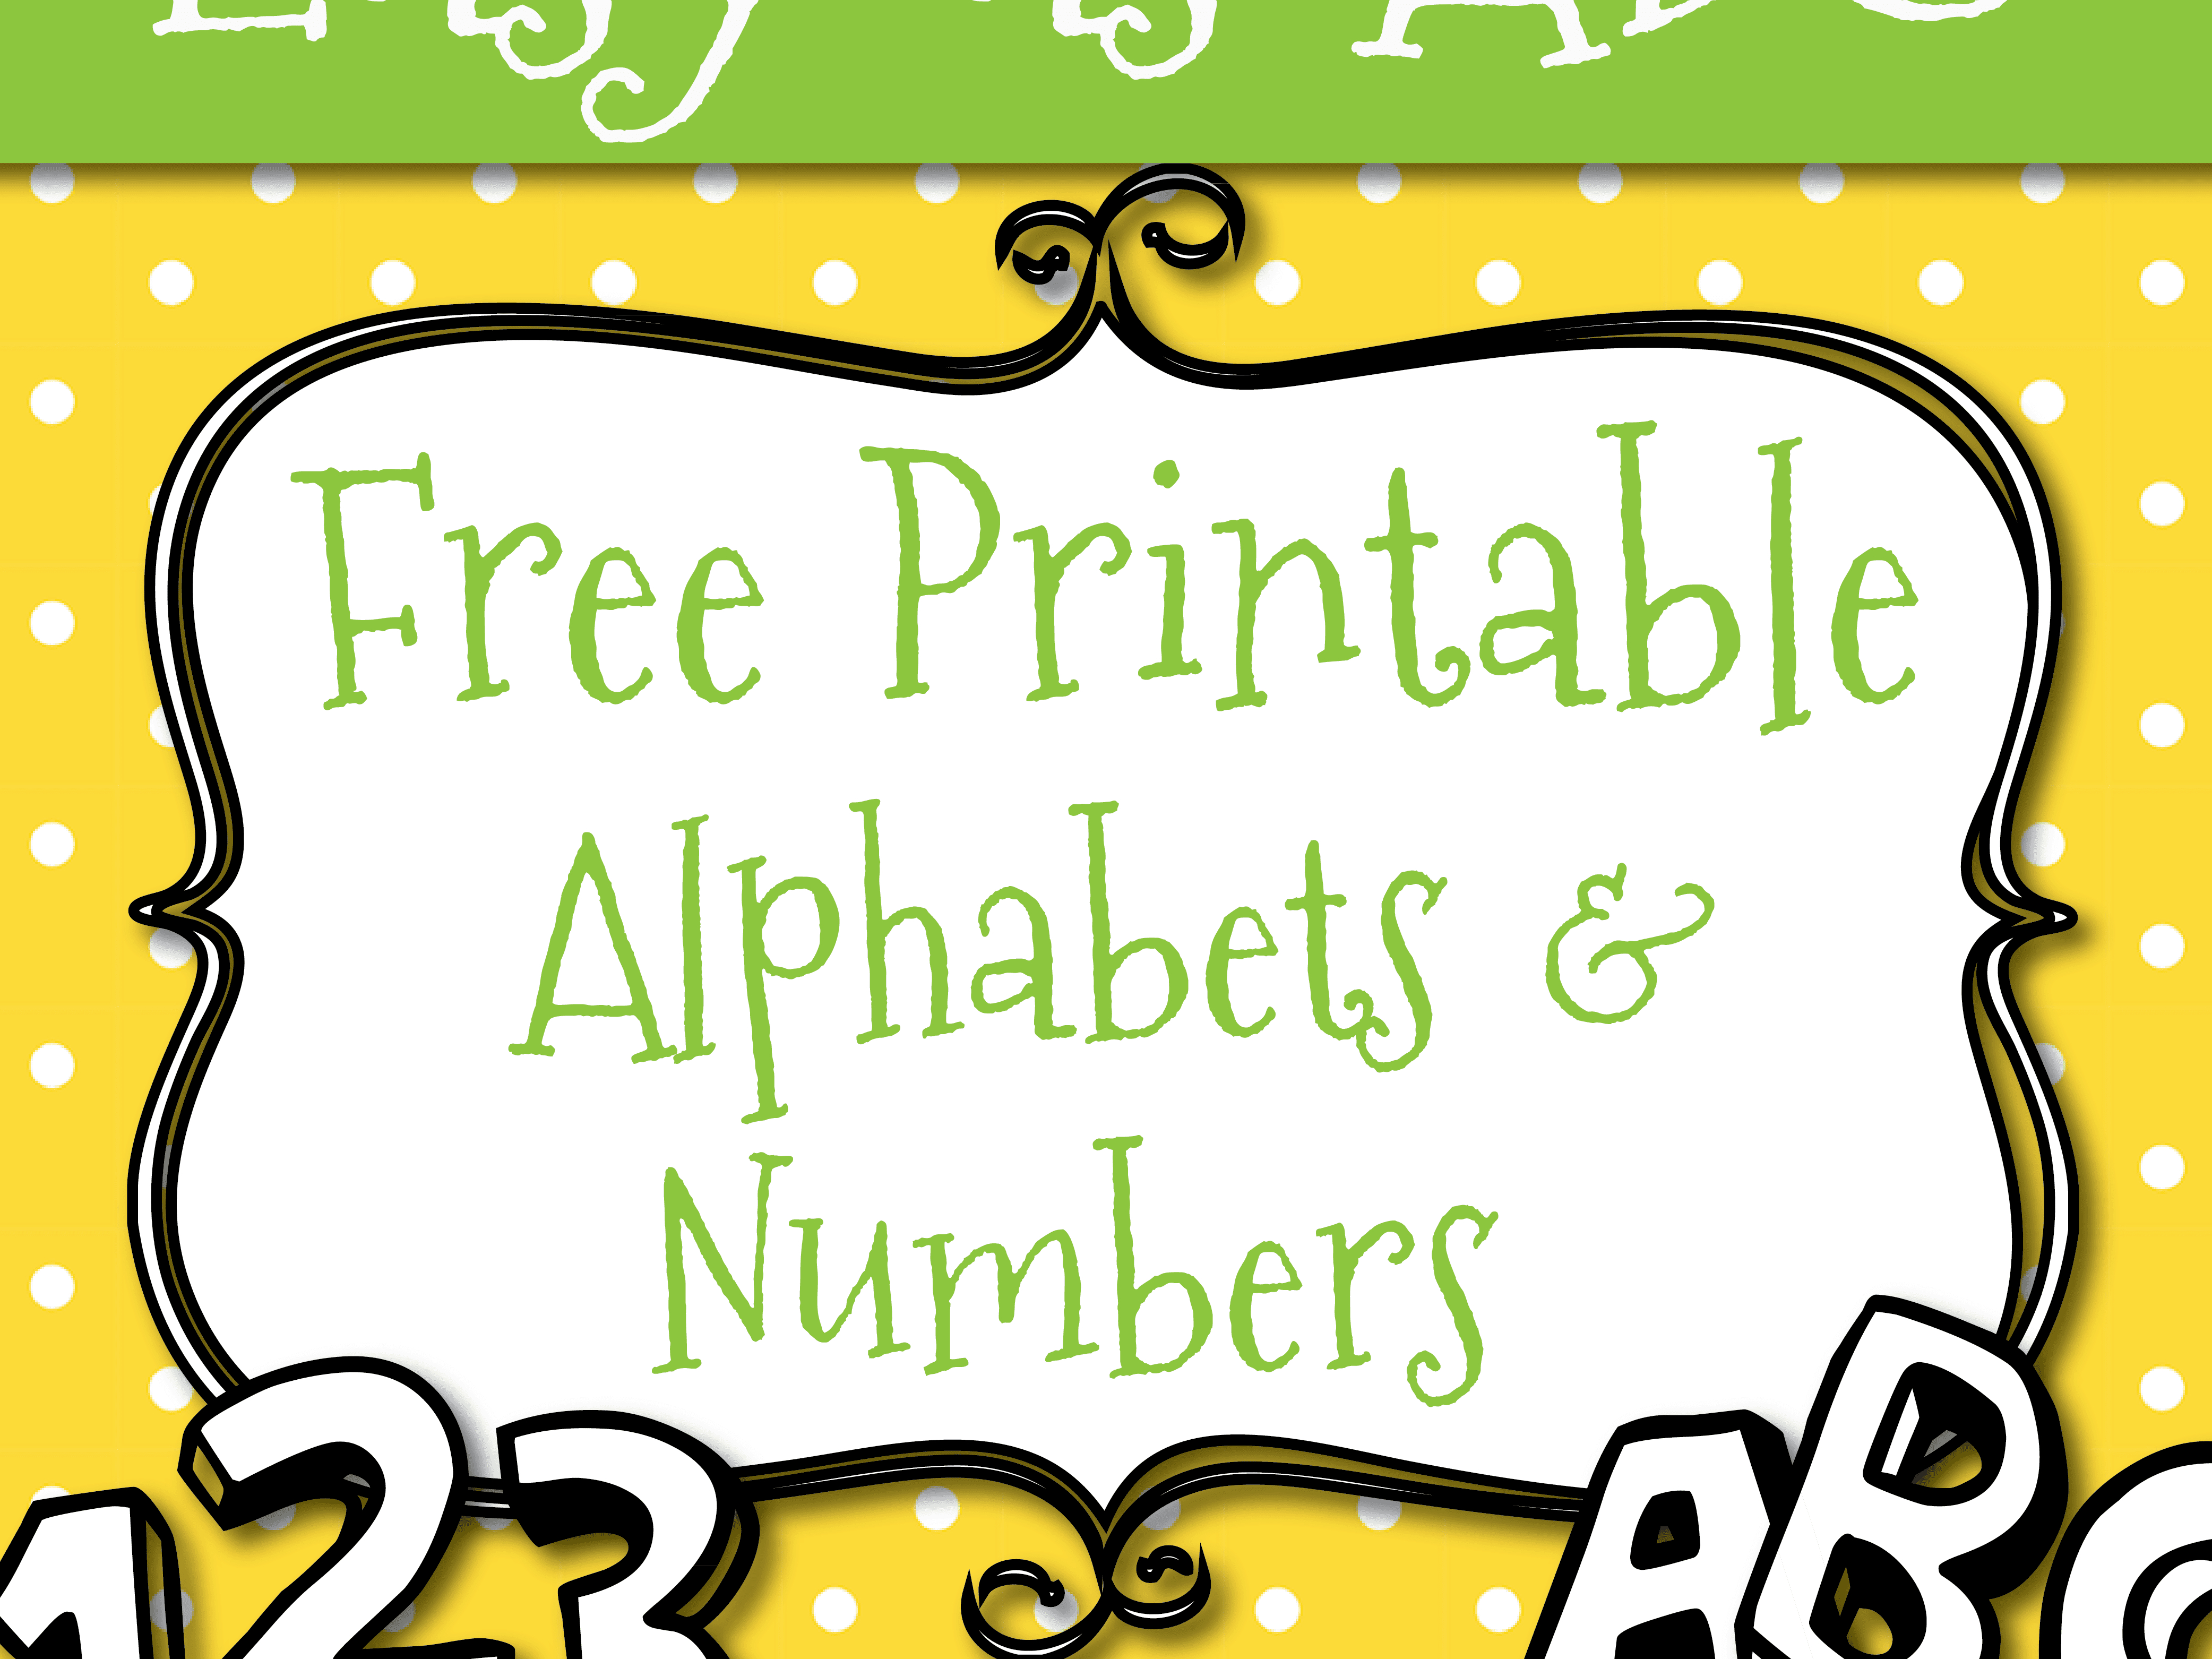 Free Printable Letters And Numbers For Crafts - Free Printable Letters